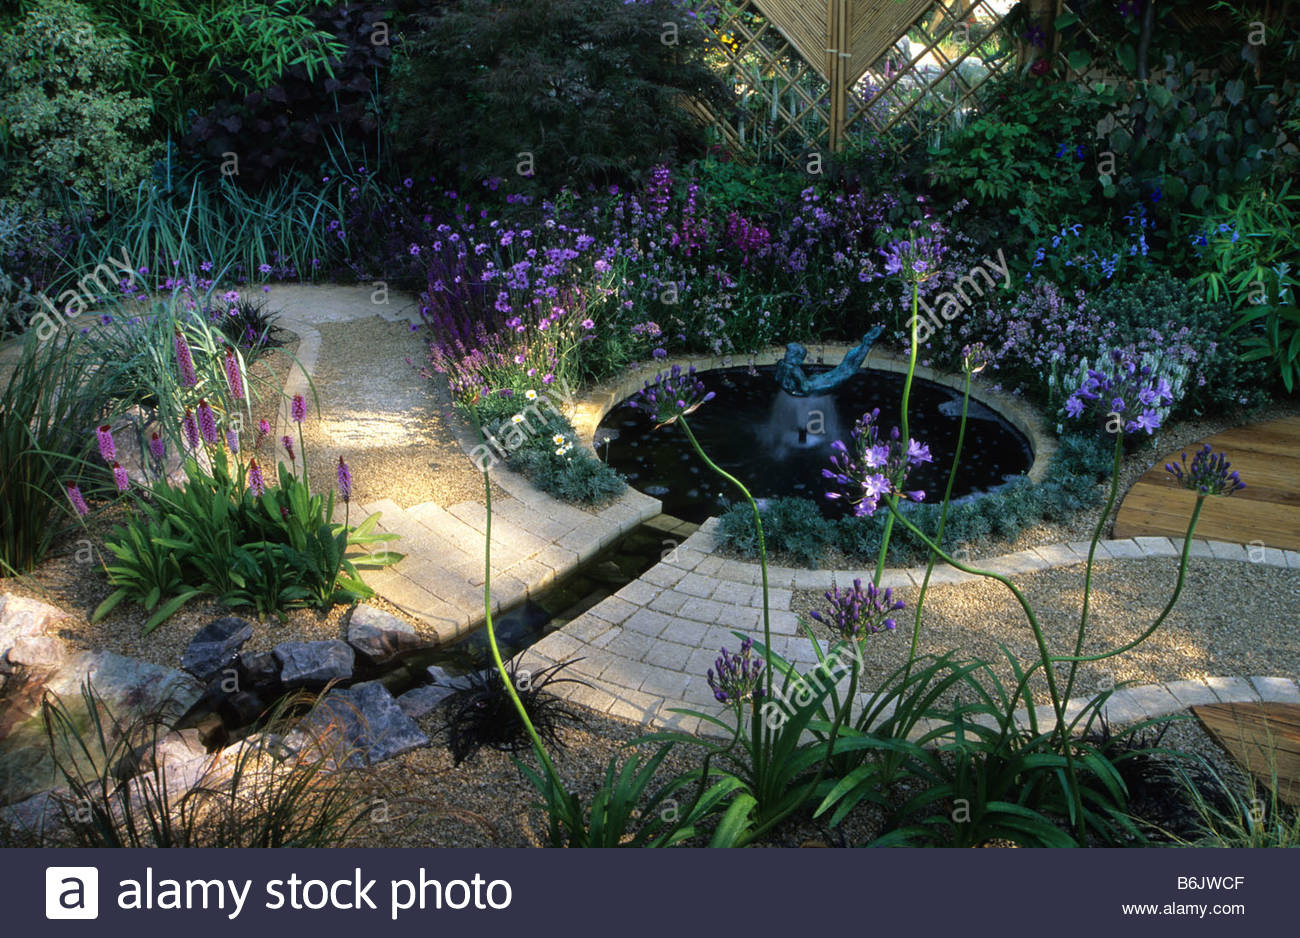 Superieur Feng Shui Garden Design Pamela Woods Formal Circular Pool With Sculptural  Fountian Winding Path And Cool Colour Planting